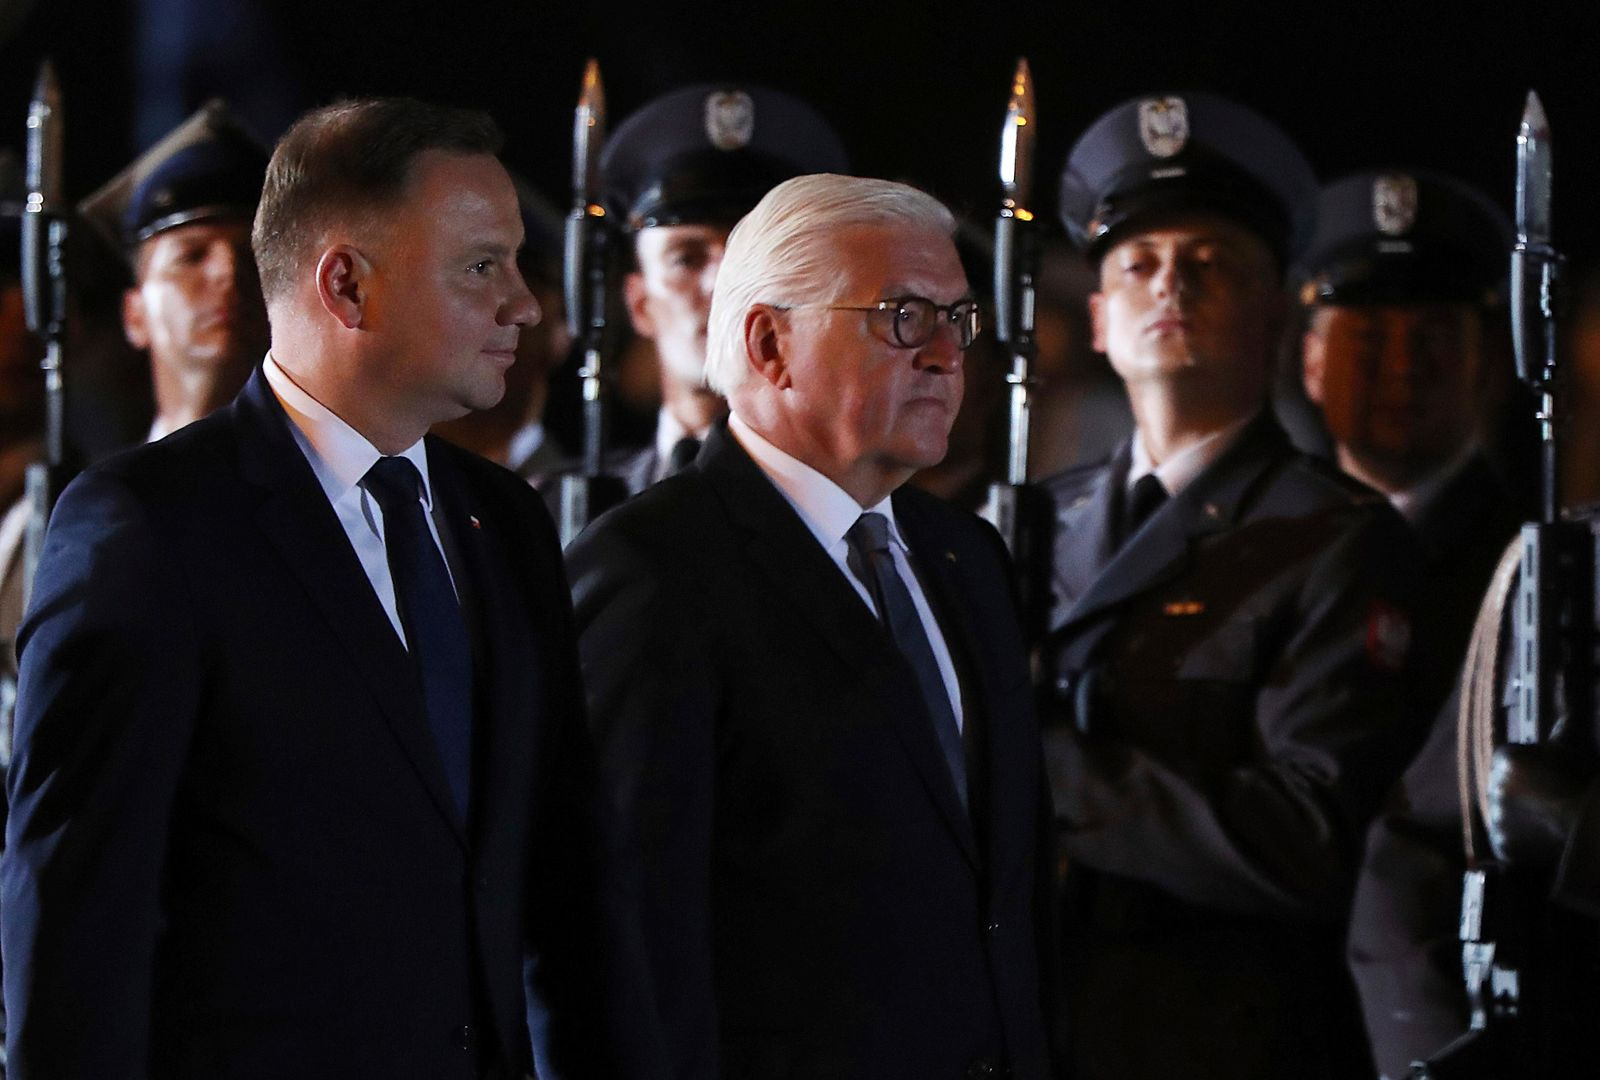 German President Frank-Walter Steinmeier, right, and Polish President Andrzej Duda, left, attend ceremony marking the 80th anniversary of World War II, in Wielun, Poland, Sunday, Sept. 1, 2019. (AP Photo/Czarek Sokolowski)